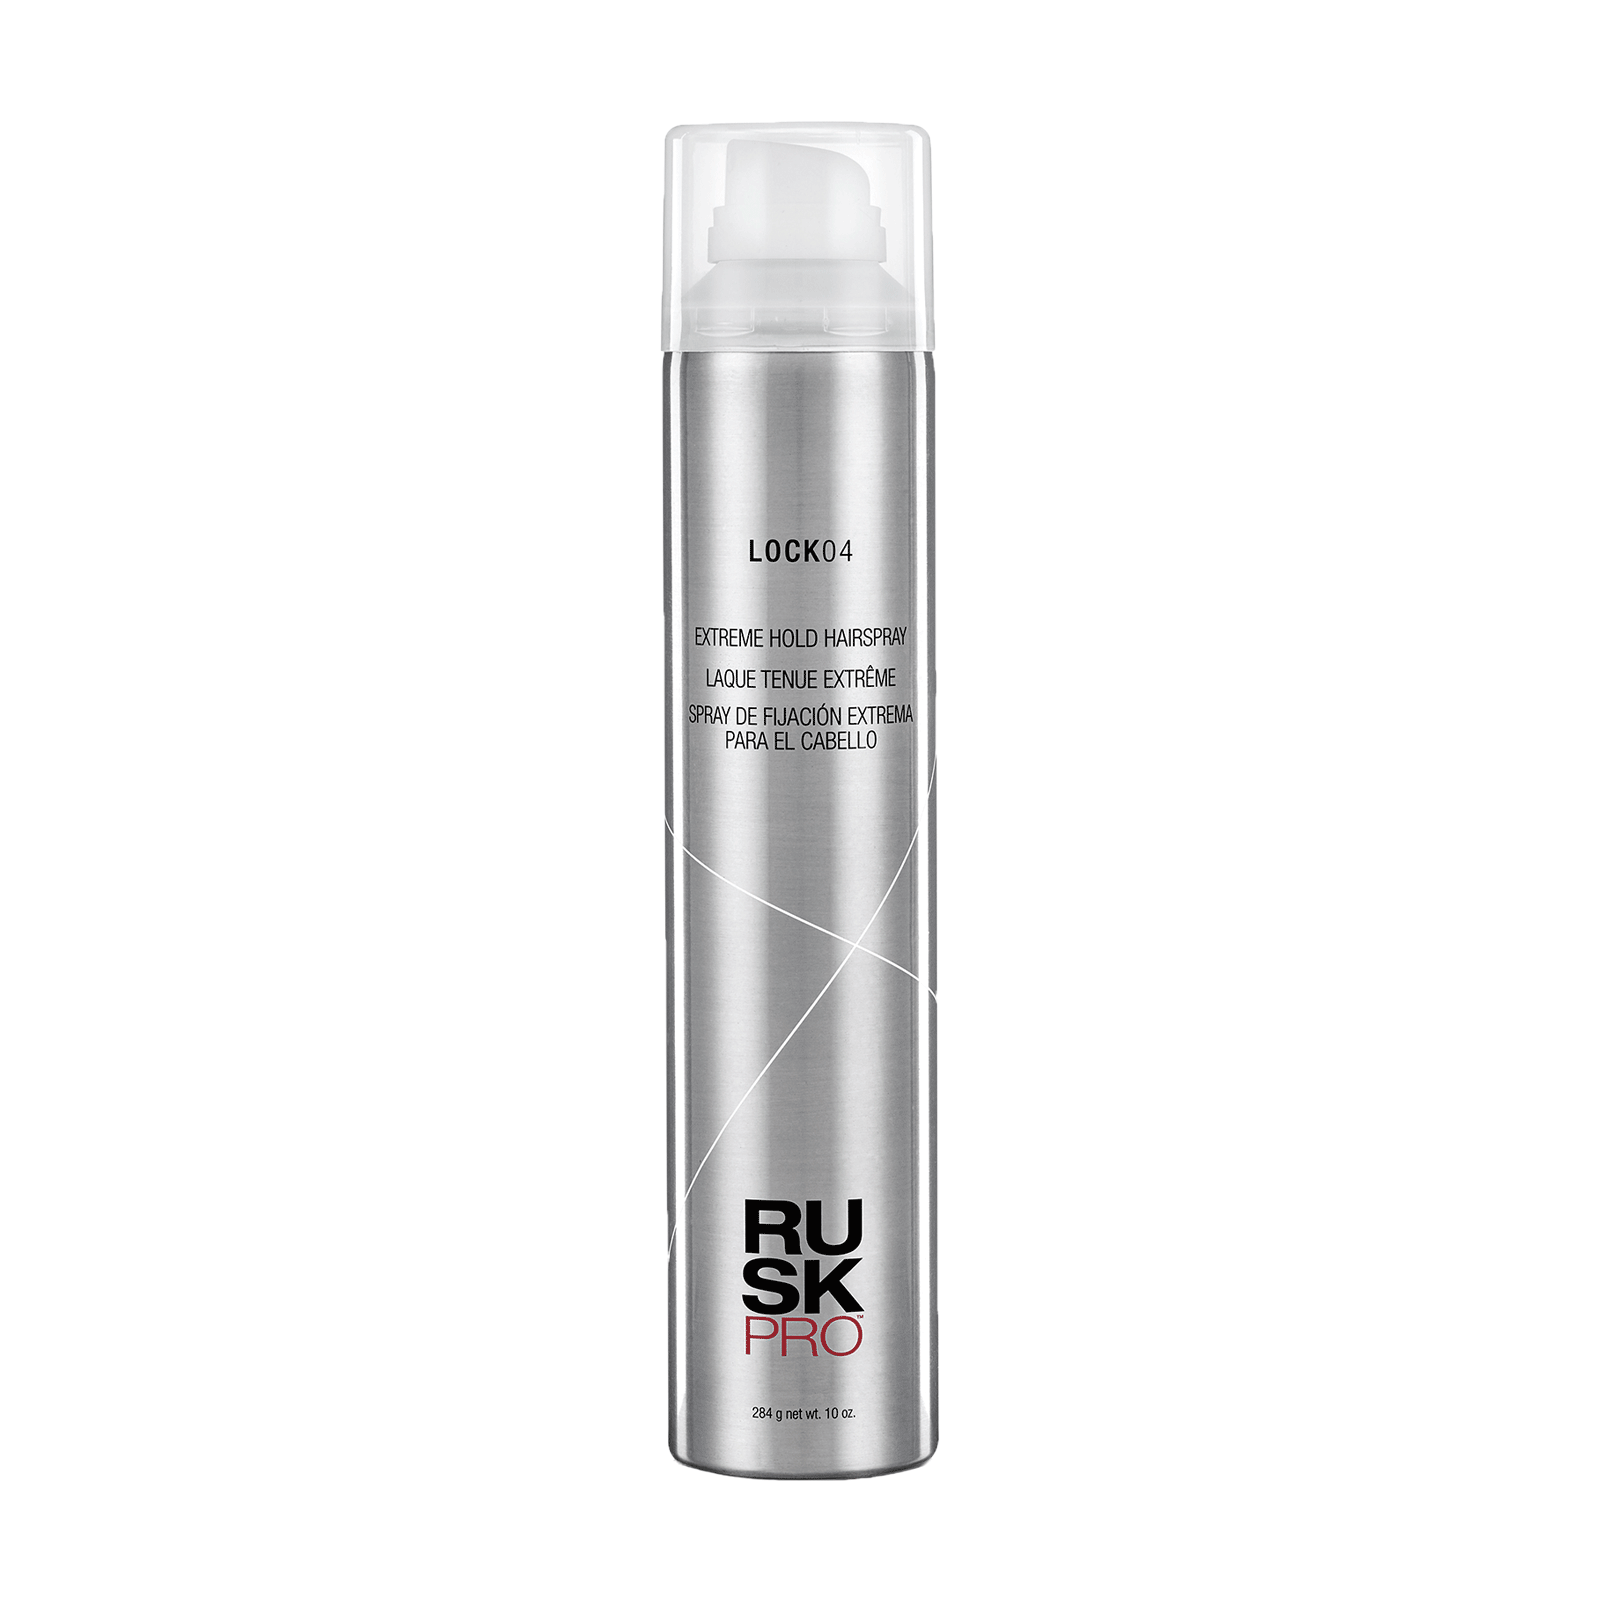 RuskPRO Lock04 Extreme Hold Hairspray